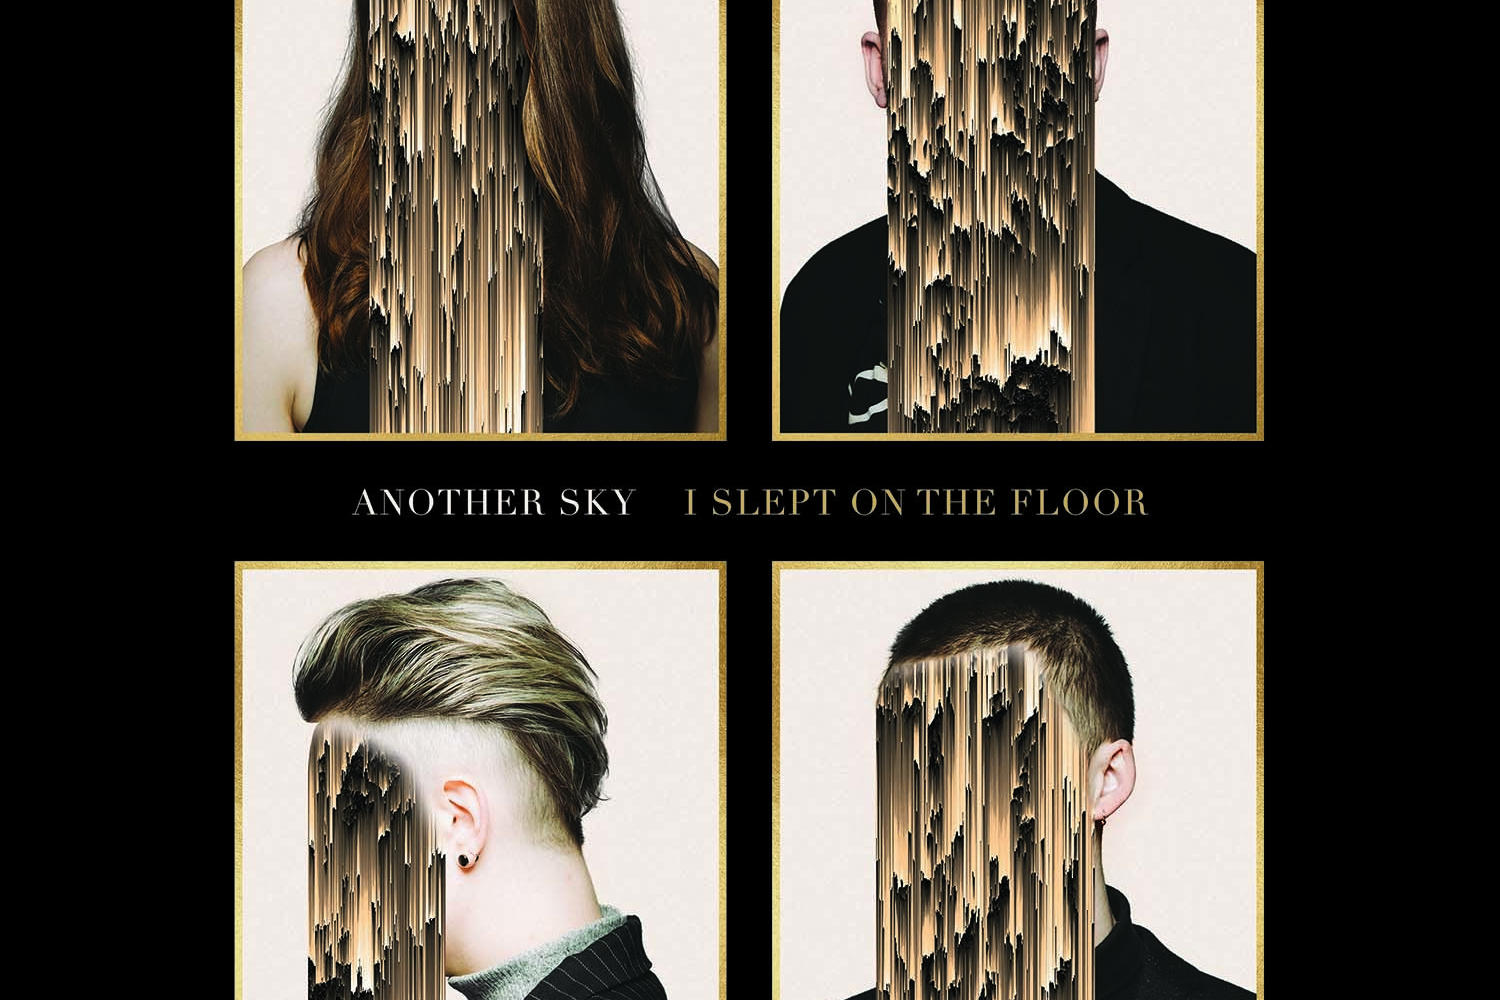 Another Sky - I Slept On The Floor